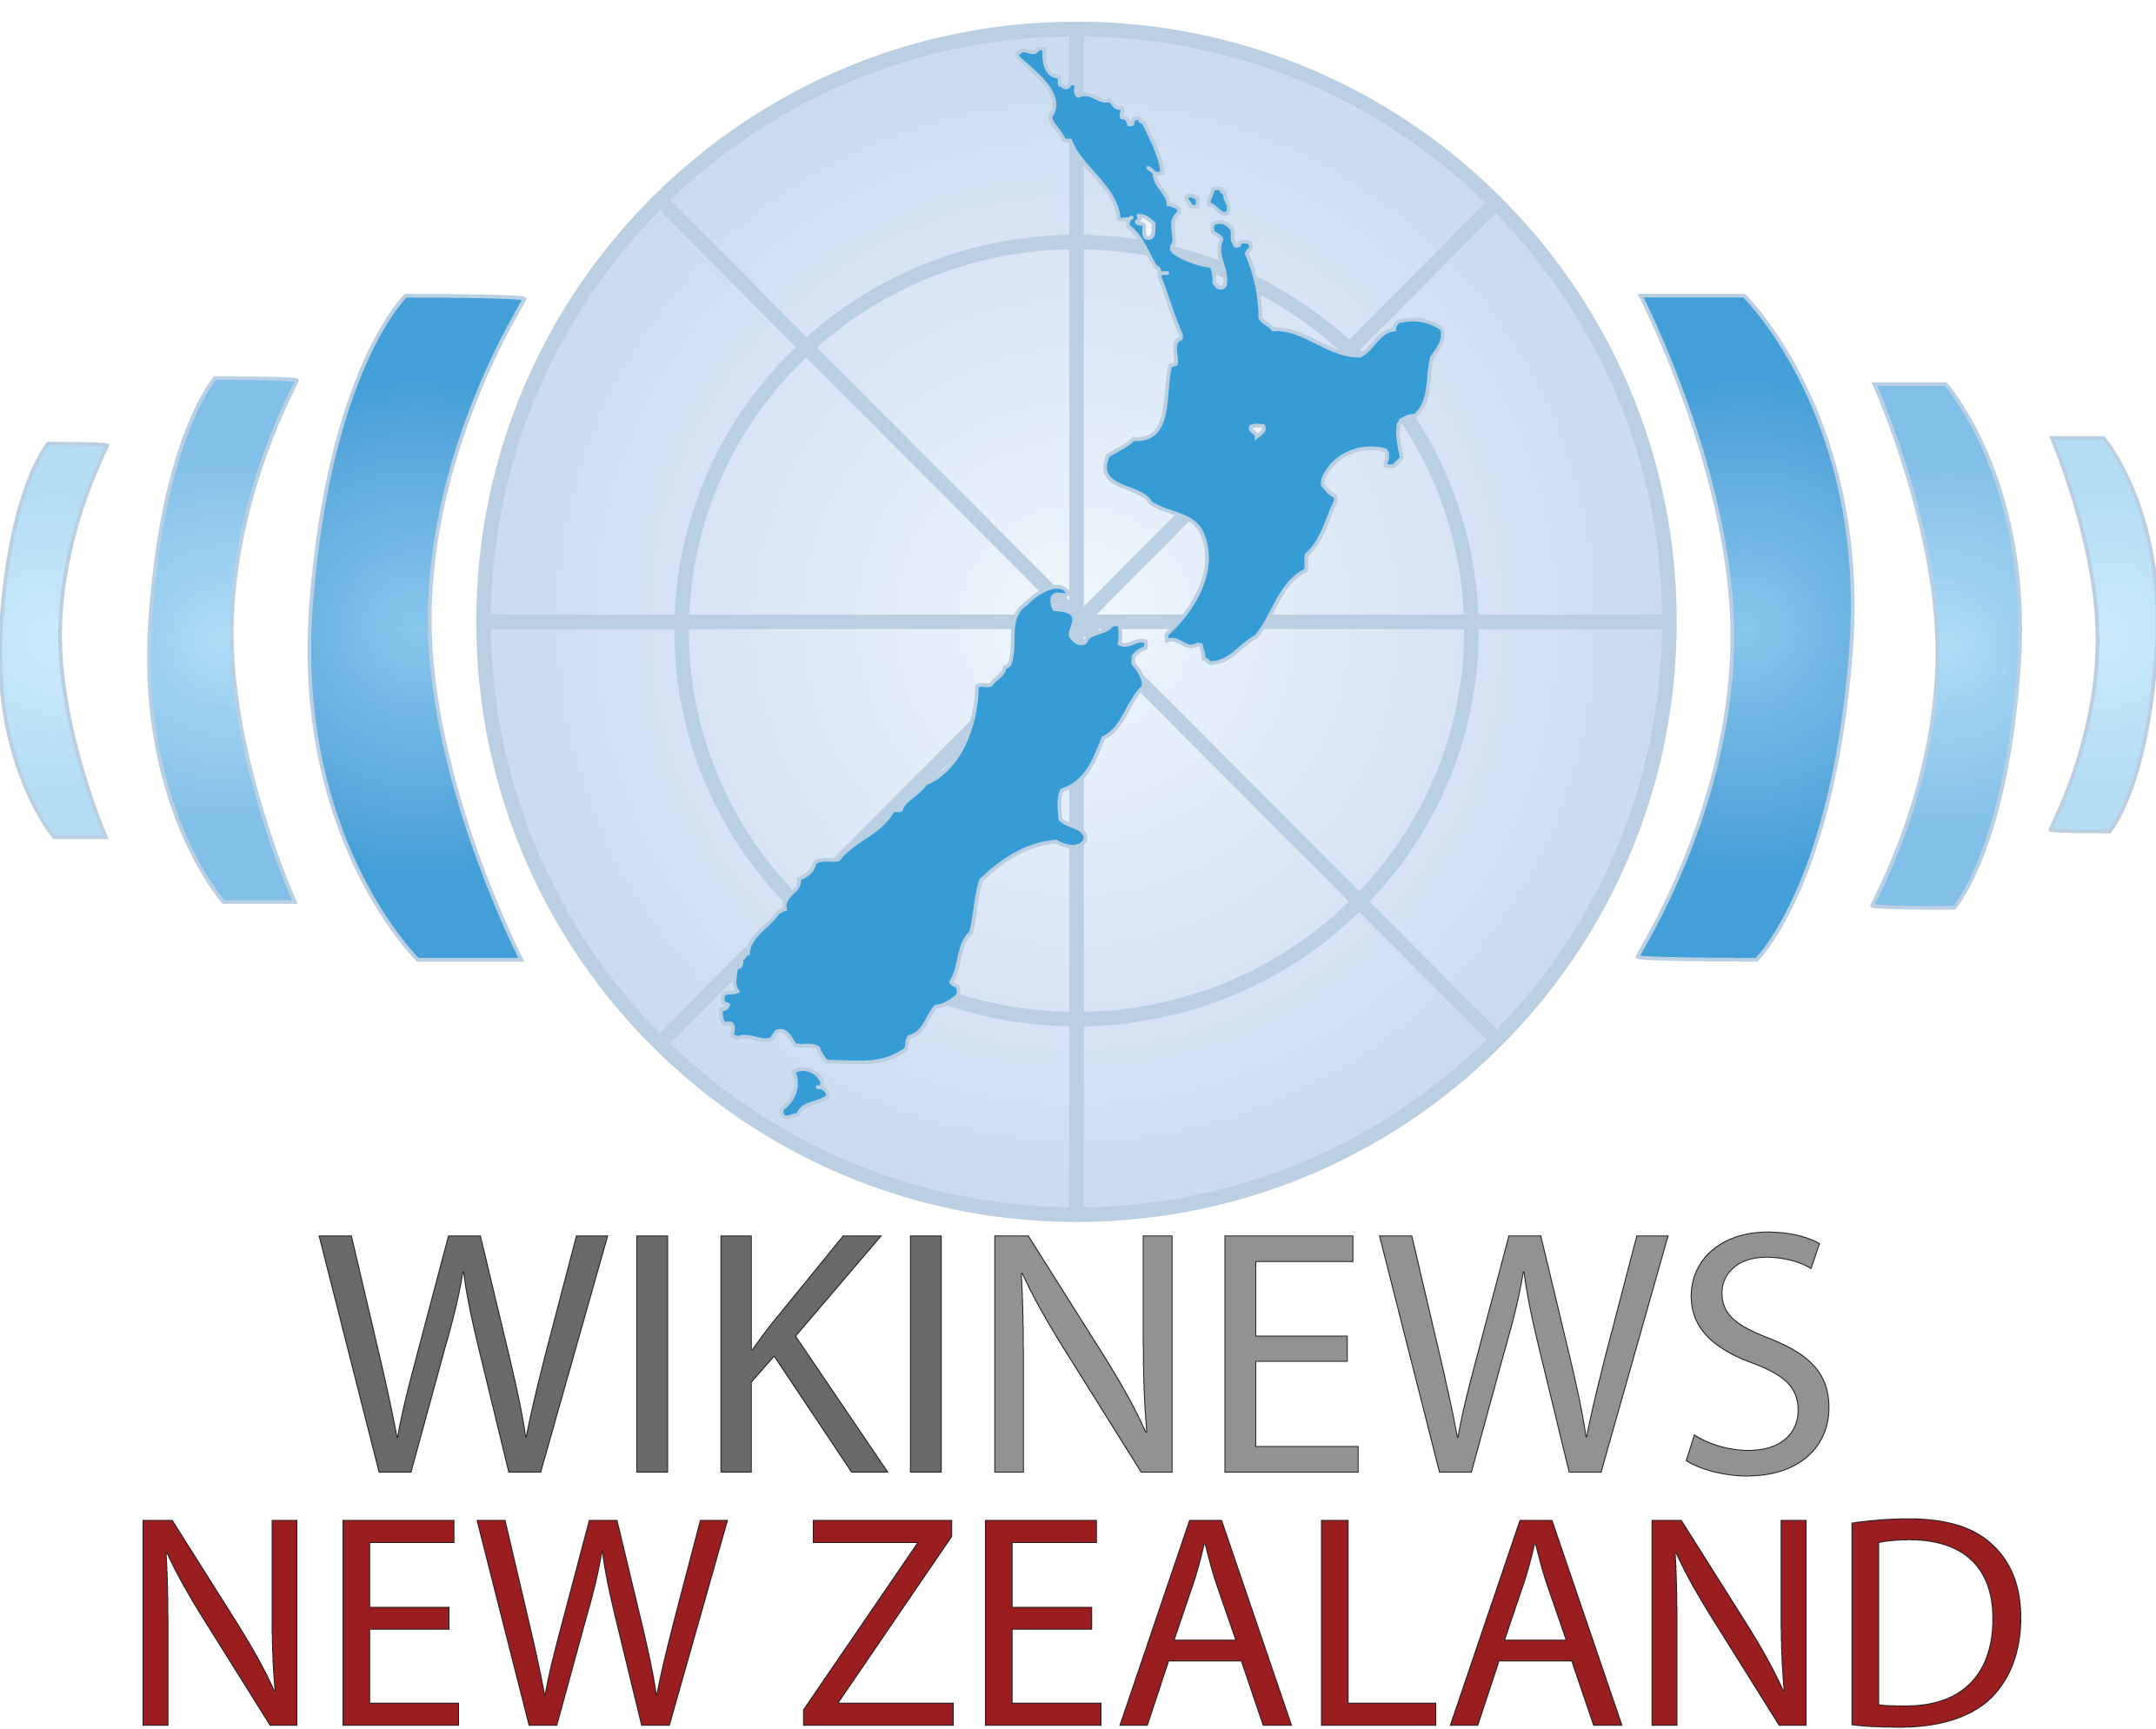 News New Zealand Wikipedia: Wikipedia Is Top Online News Site, But What About Wikinews